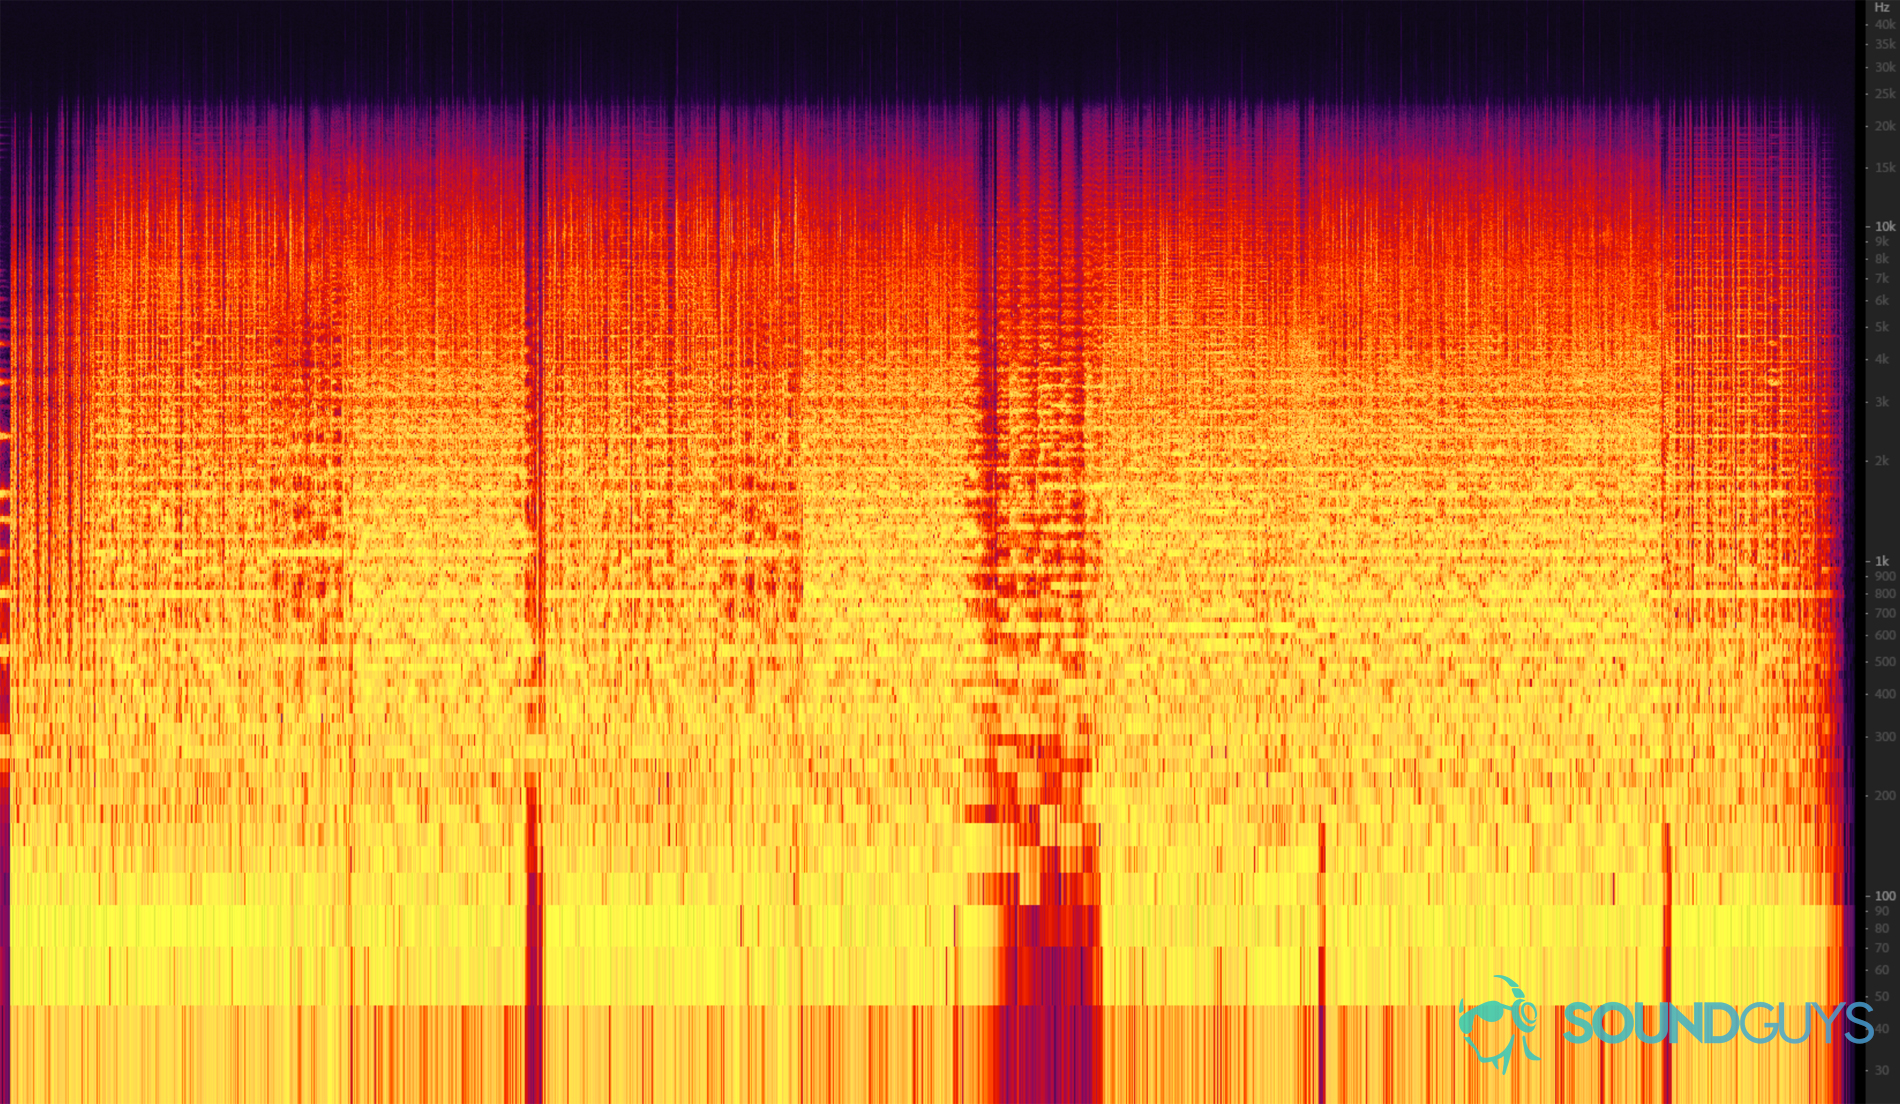 A spectrogram showing what a 24-bit music file looks like without any data deleted from it - how audio compression works